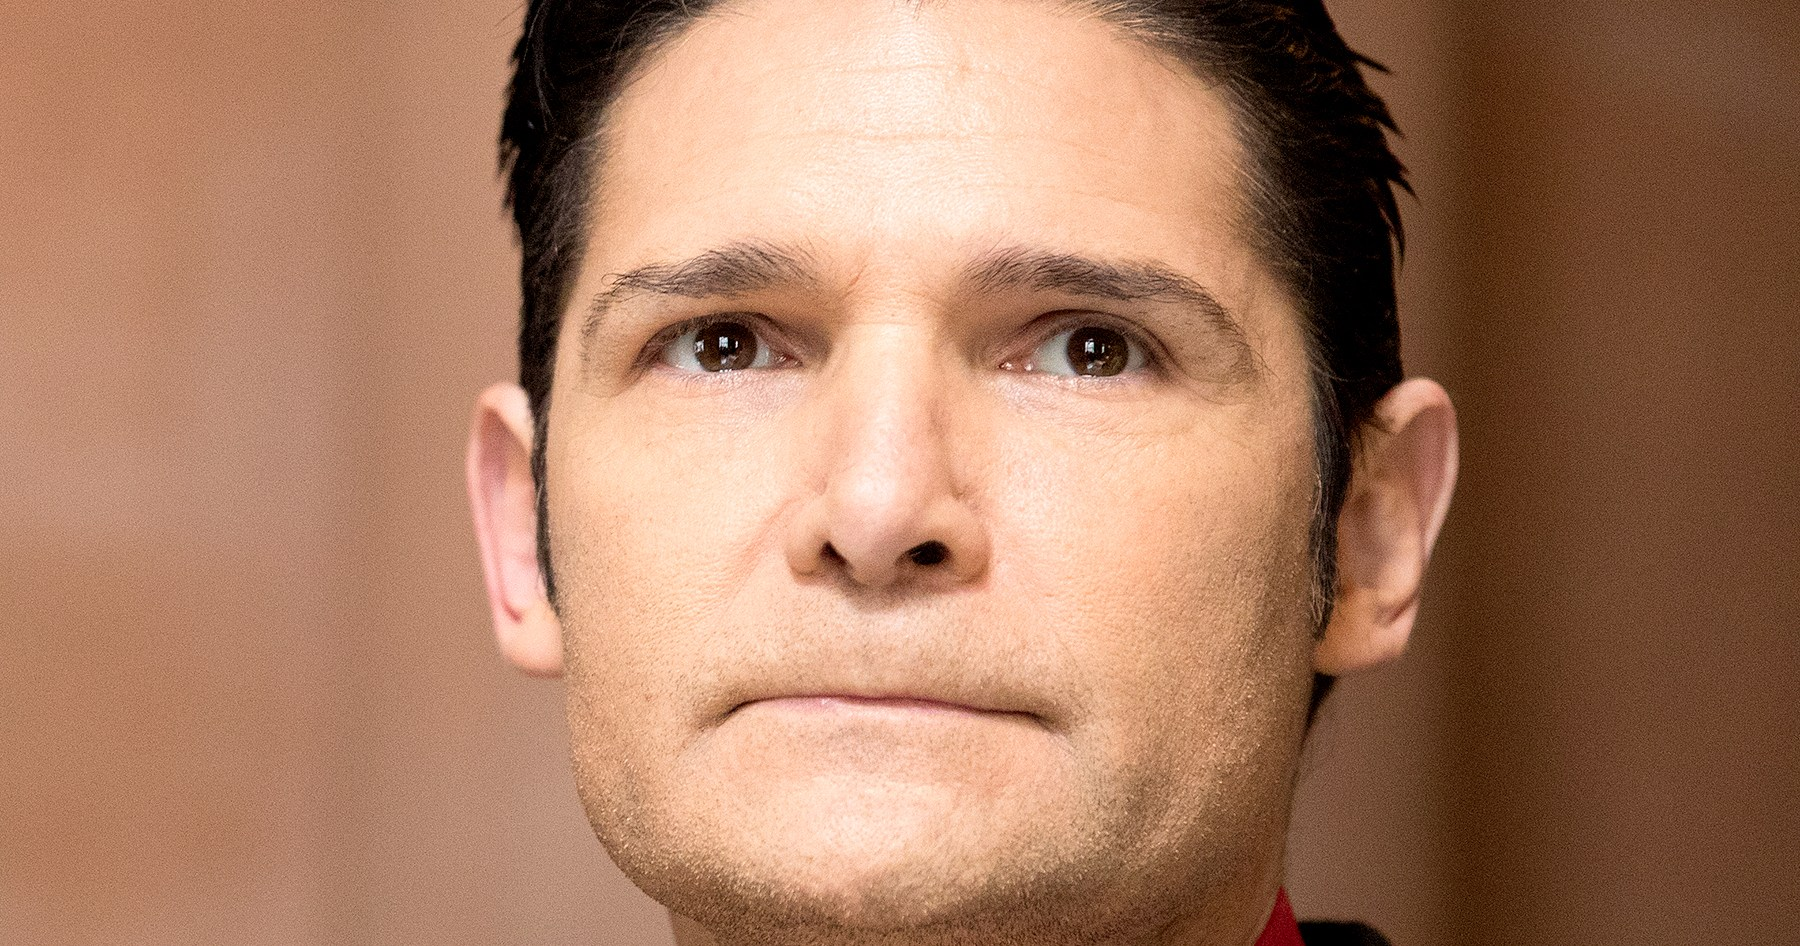 Corey Feldman Reveals Title of His Long-Awaited Documentary About Child Abuse in Movie Industry